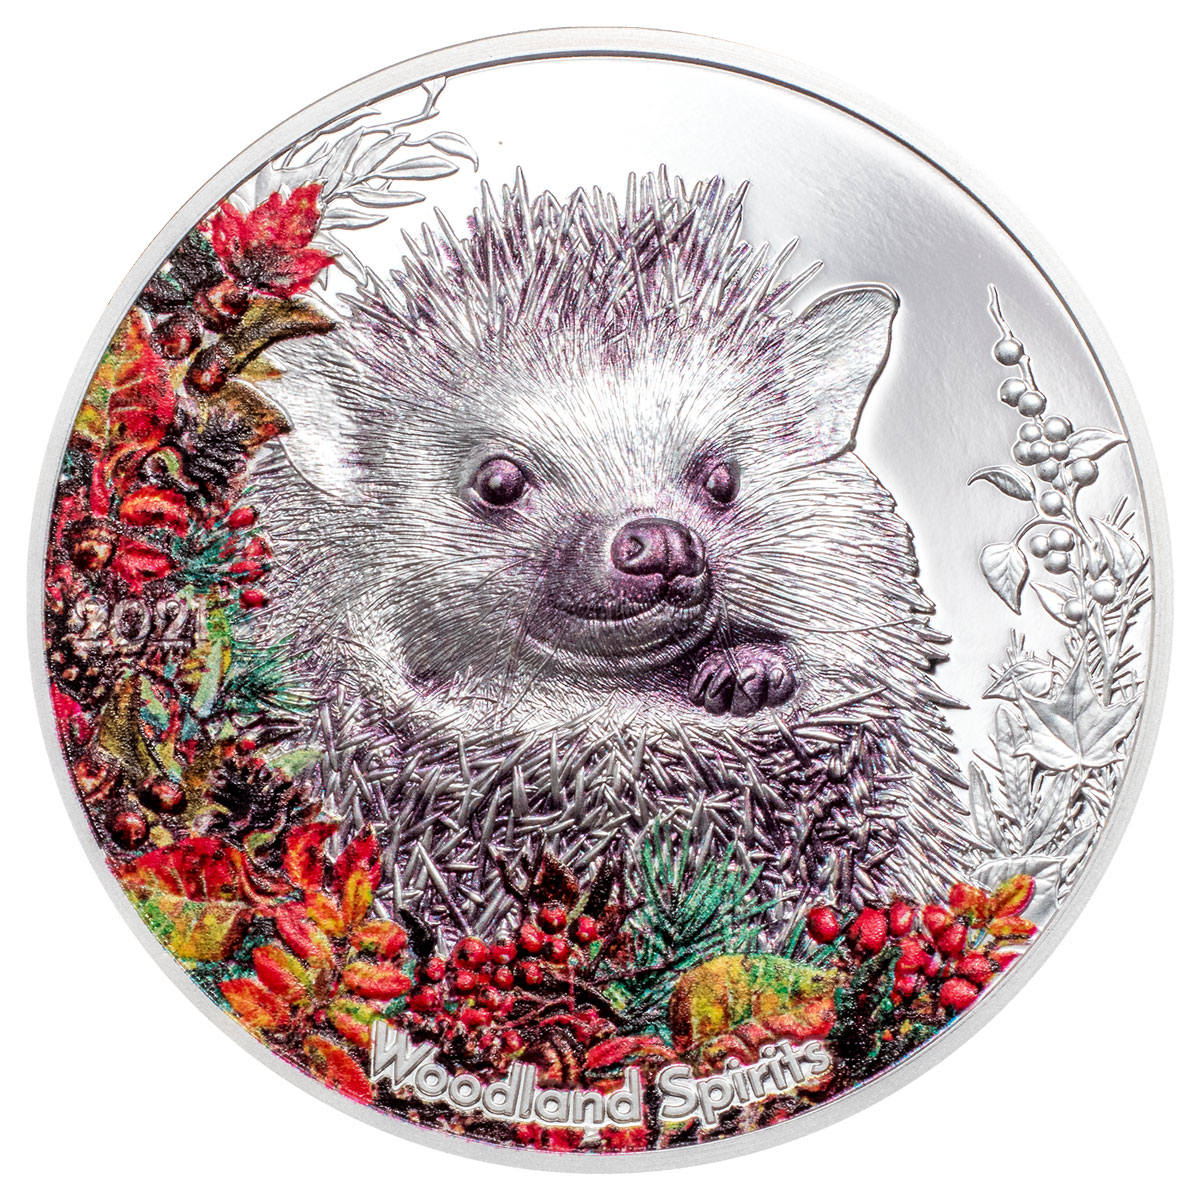 2021 Mongolia Woodland Spirits - Hedgehog High Relief 1 oz Silver Colorized Proof Coin GEM Proof In Mint Capsule